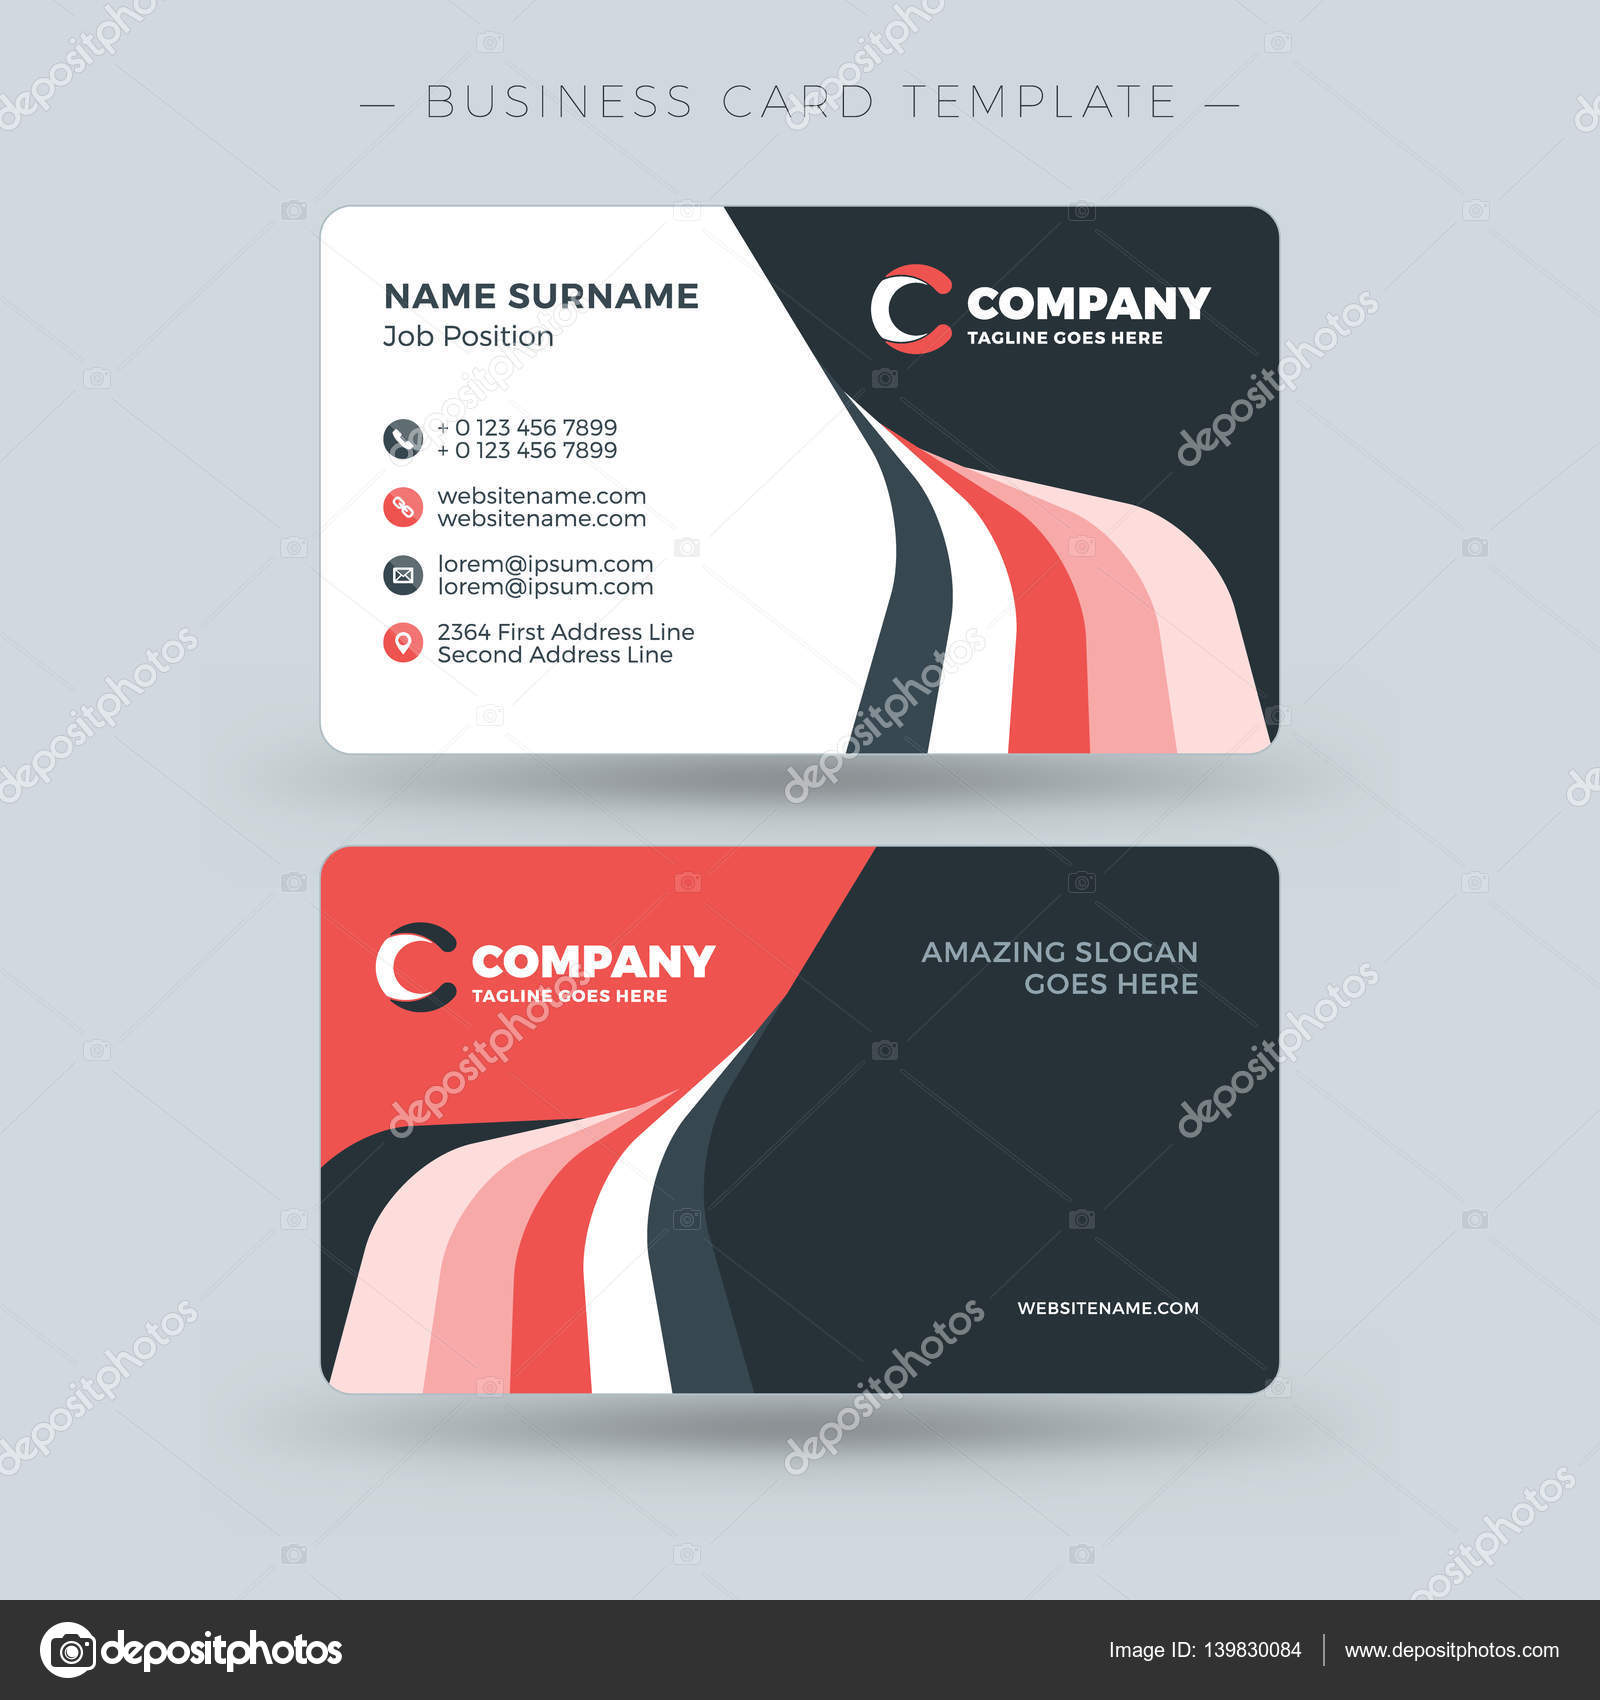 Double sided business card template with abstract red and black double sided business card template with abstract red and black waves background vector illustration colourmoves